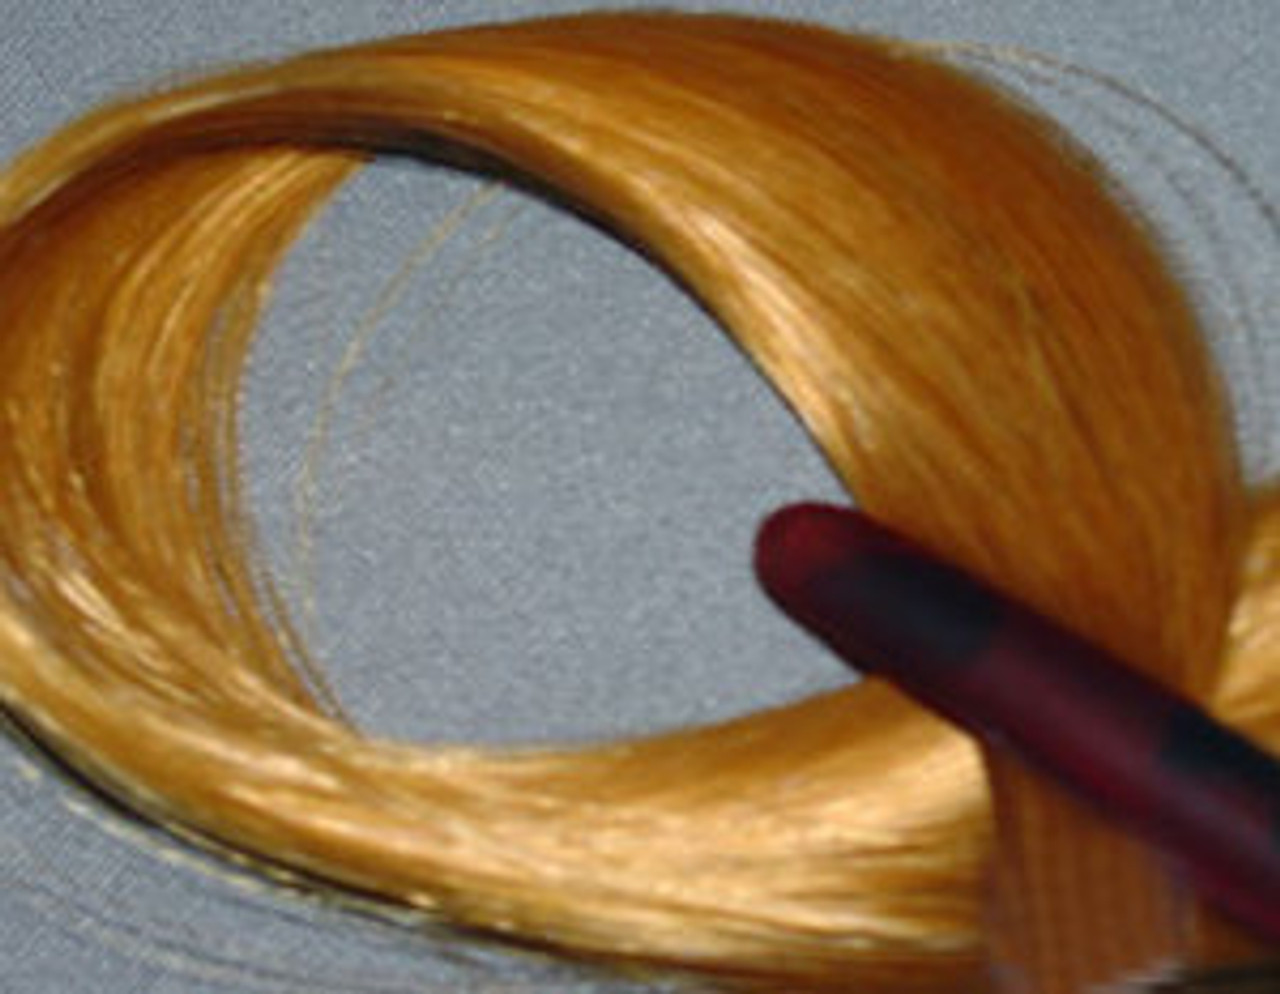 KatSilk Nylon Blond 11 Doll Hair 858